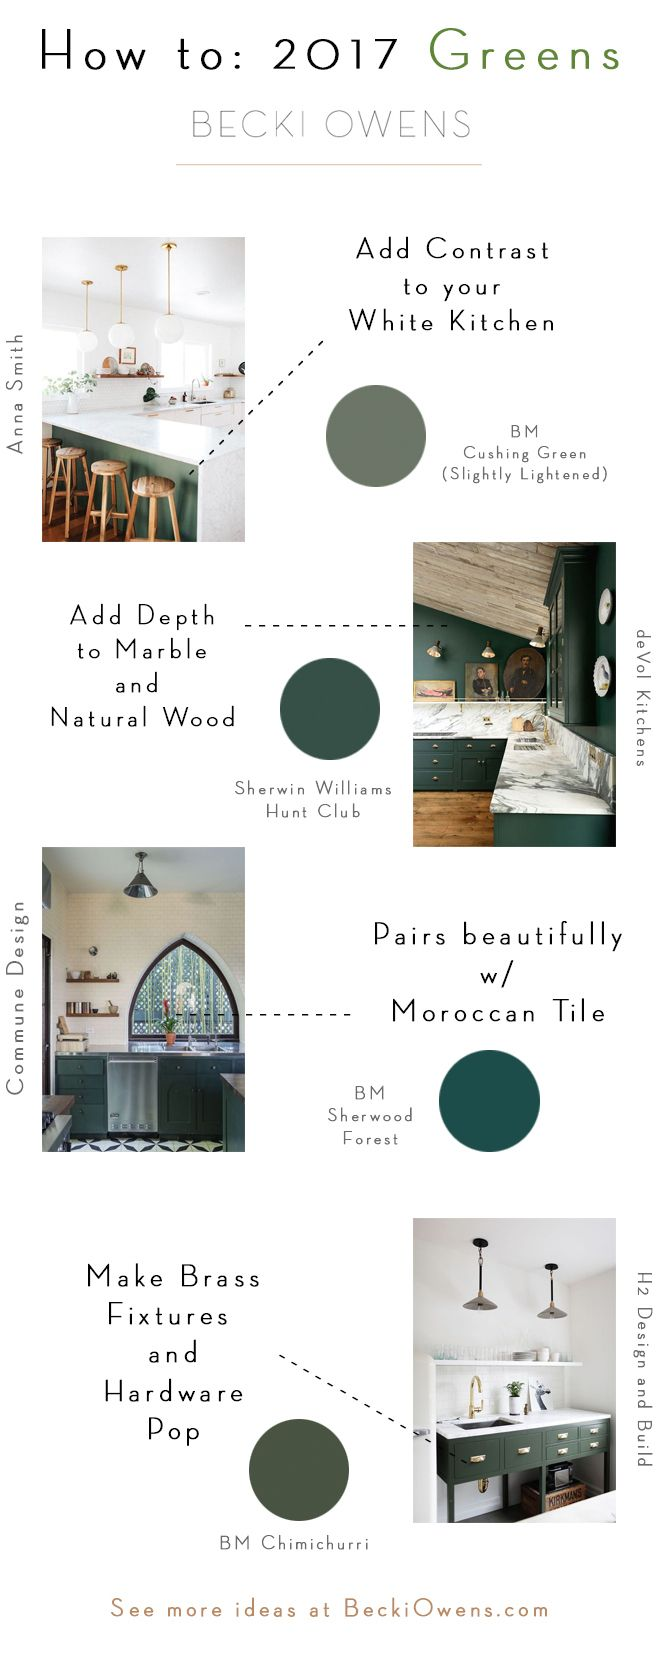 becki owens new colors of green in the kitchen